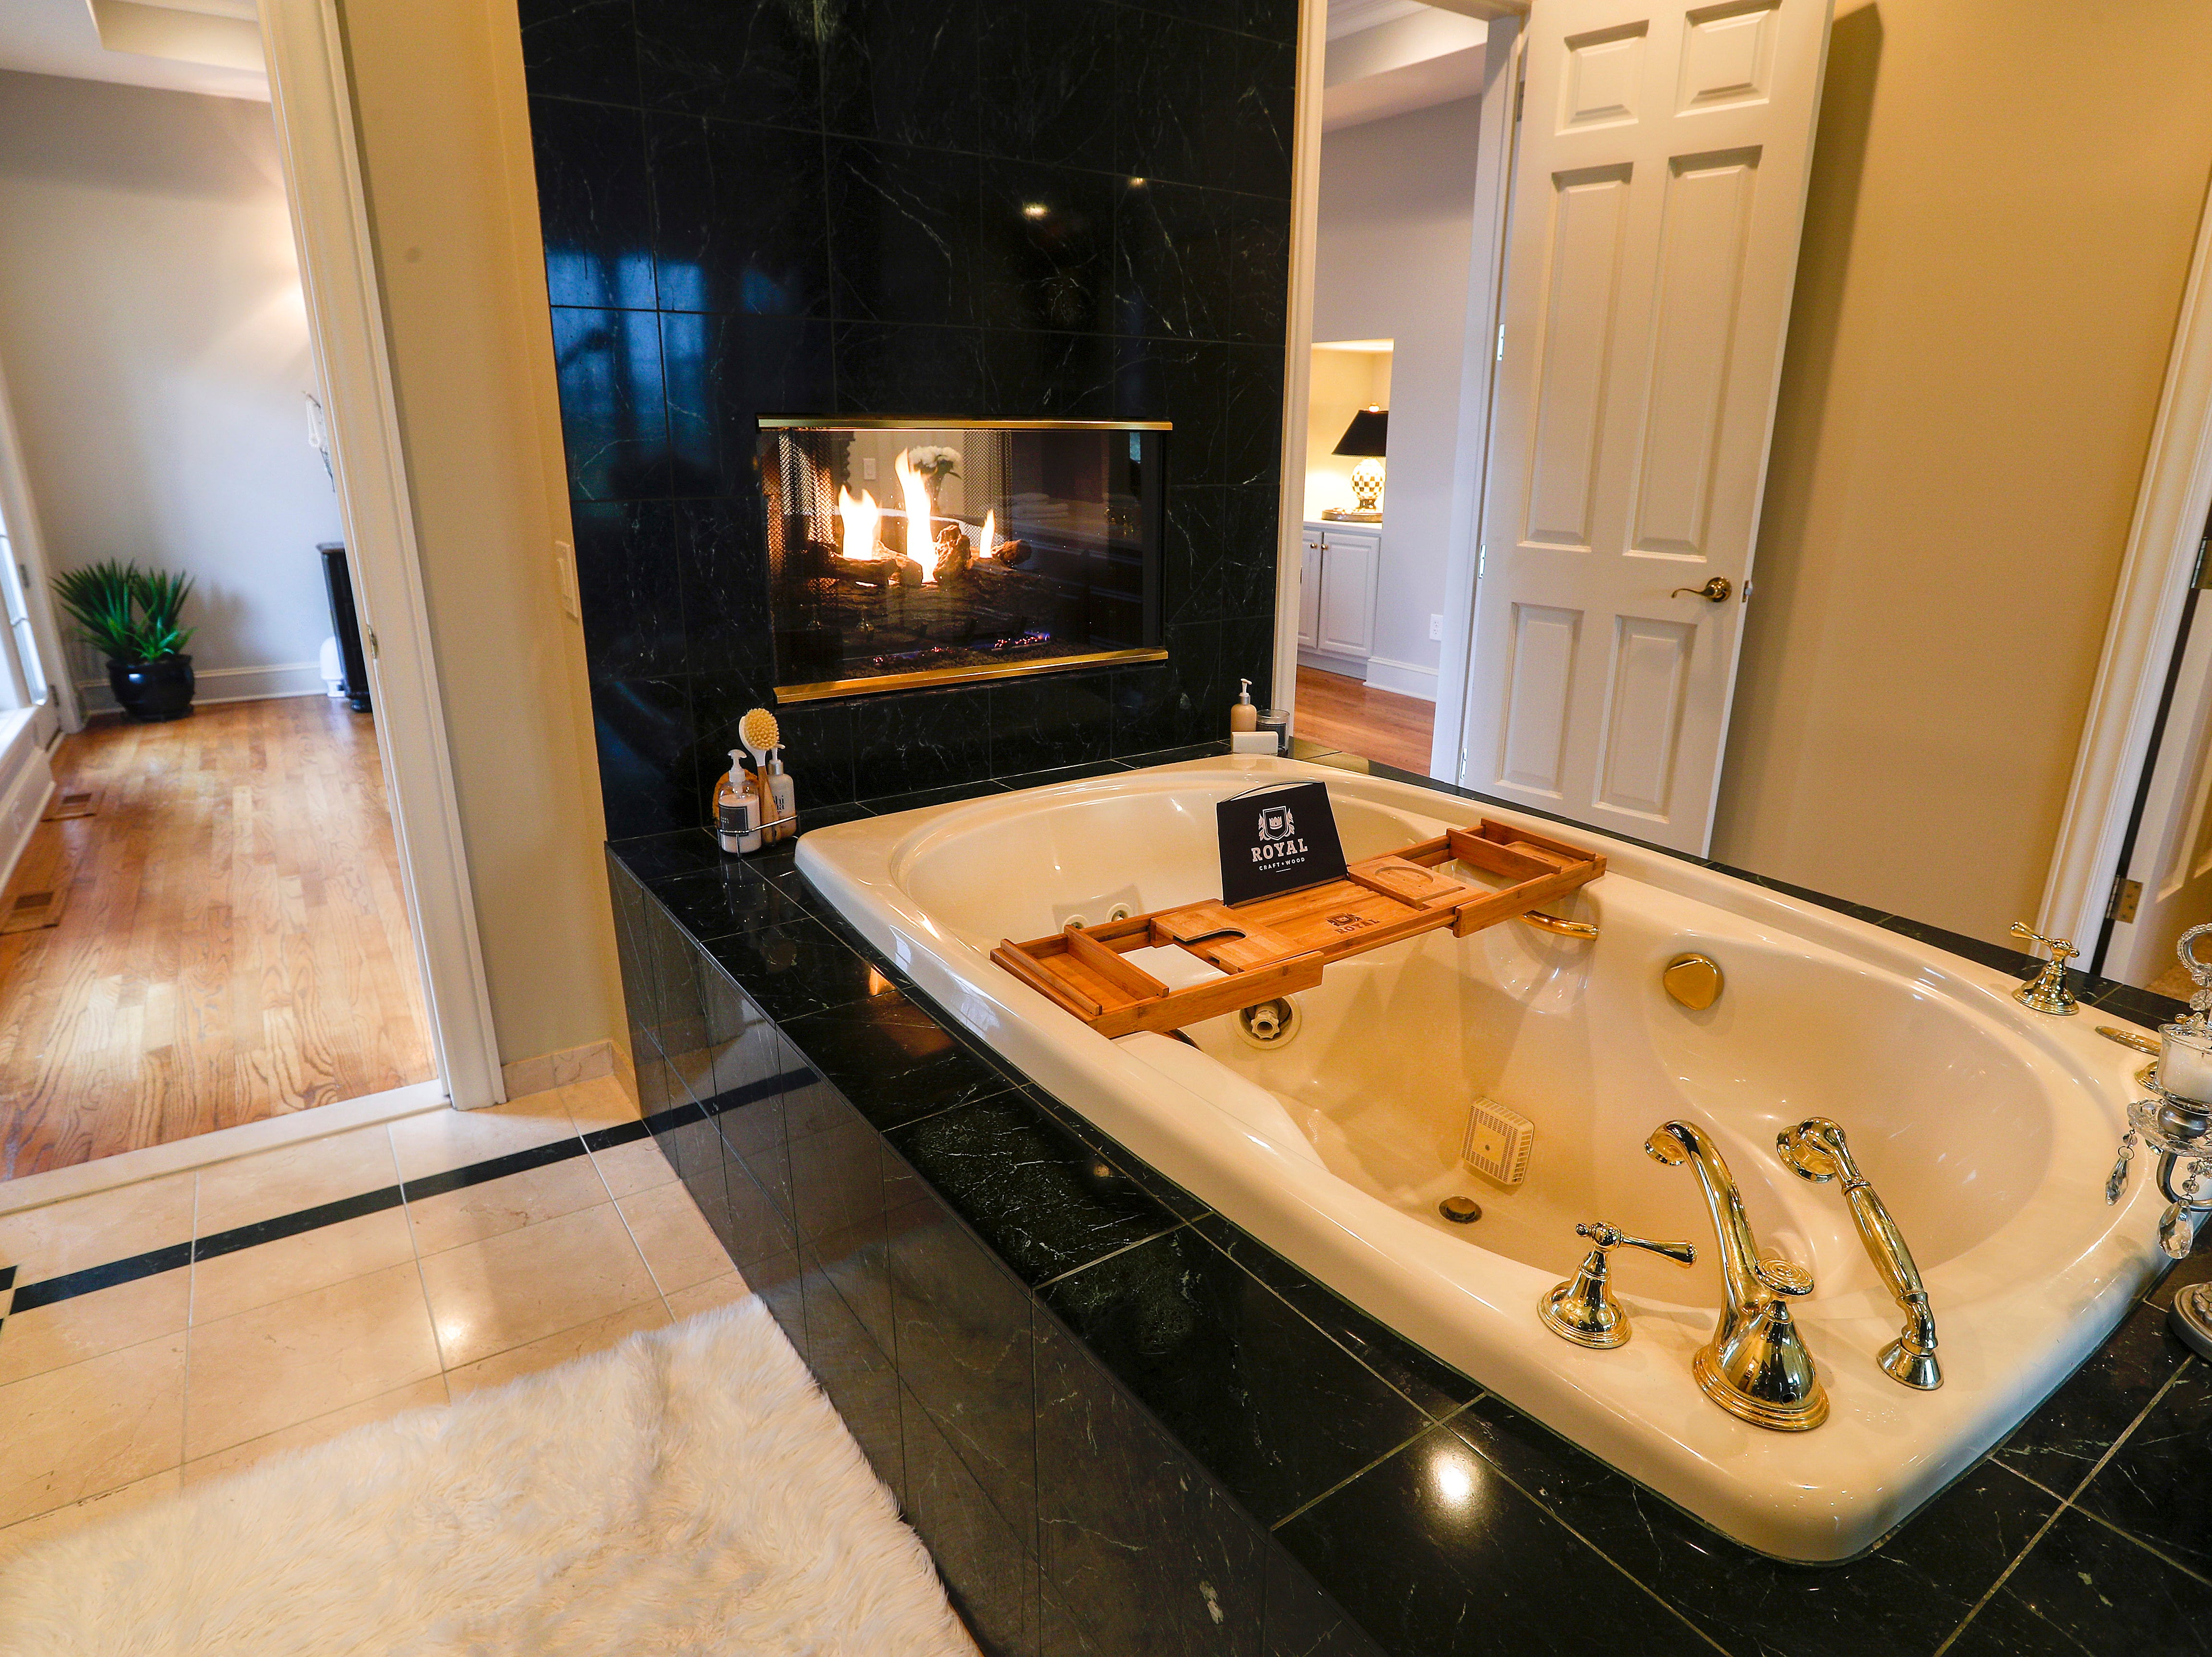 There is a spa tub with  two-way fireplace that shares space in the master bedroom.